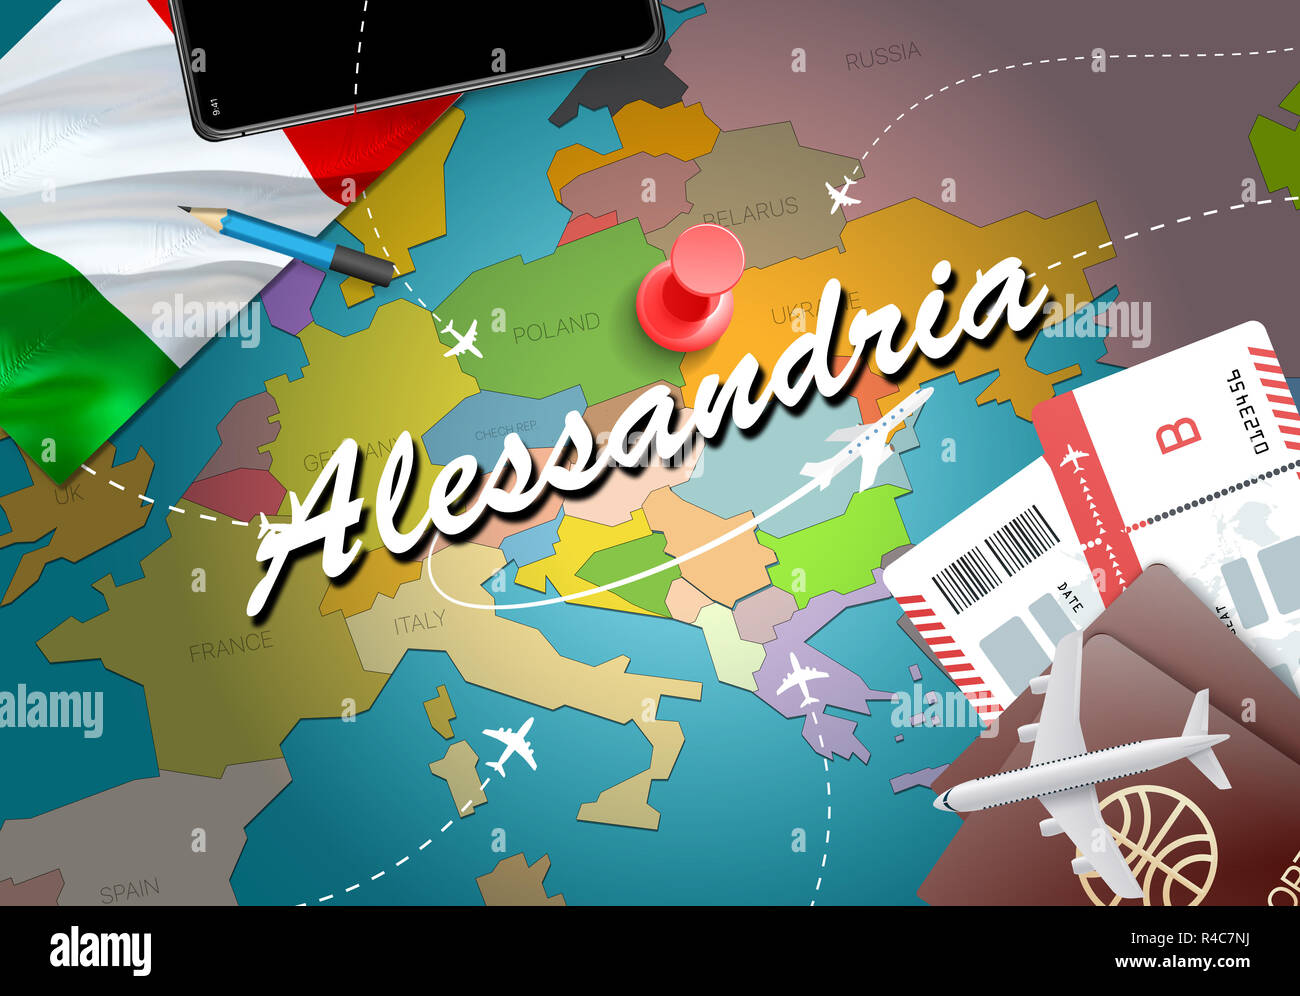 Travel Map Of Italy With Cities.Alessandria City Travel And Tourism Destination Concept Italy Flag